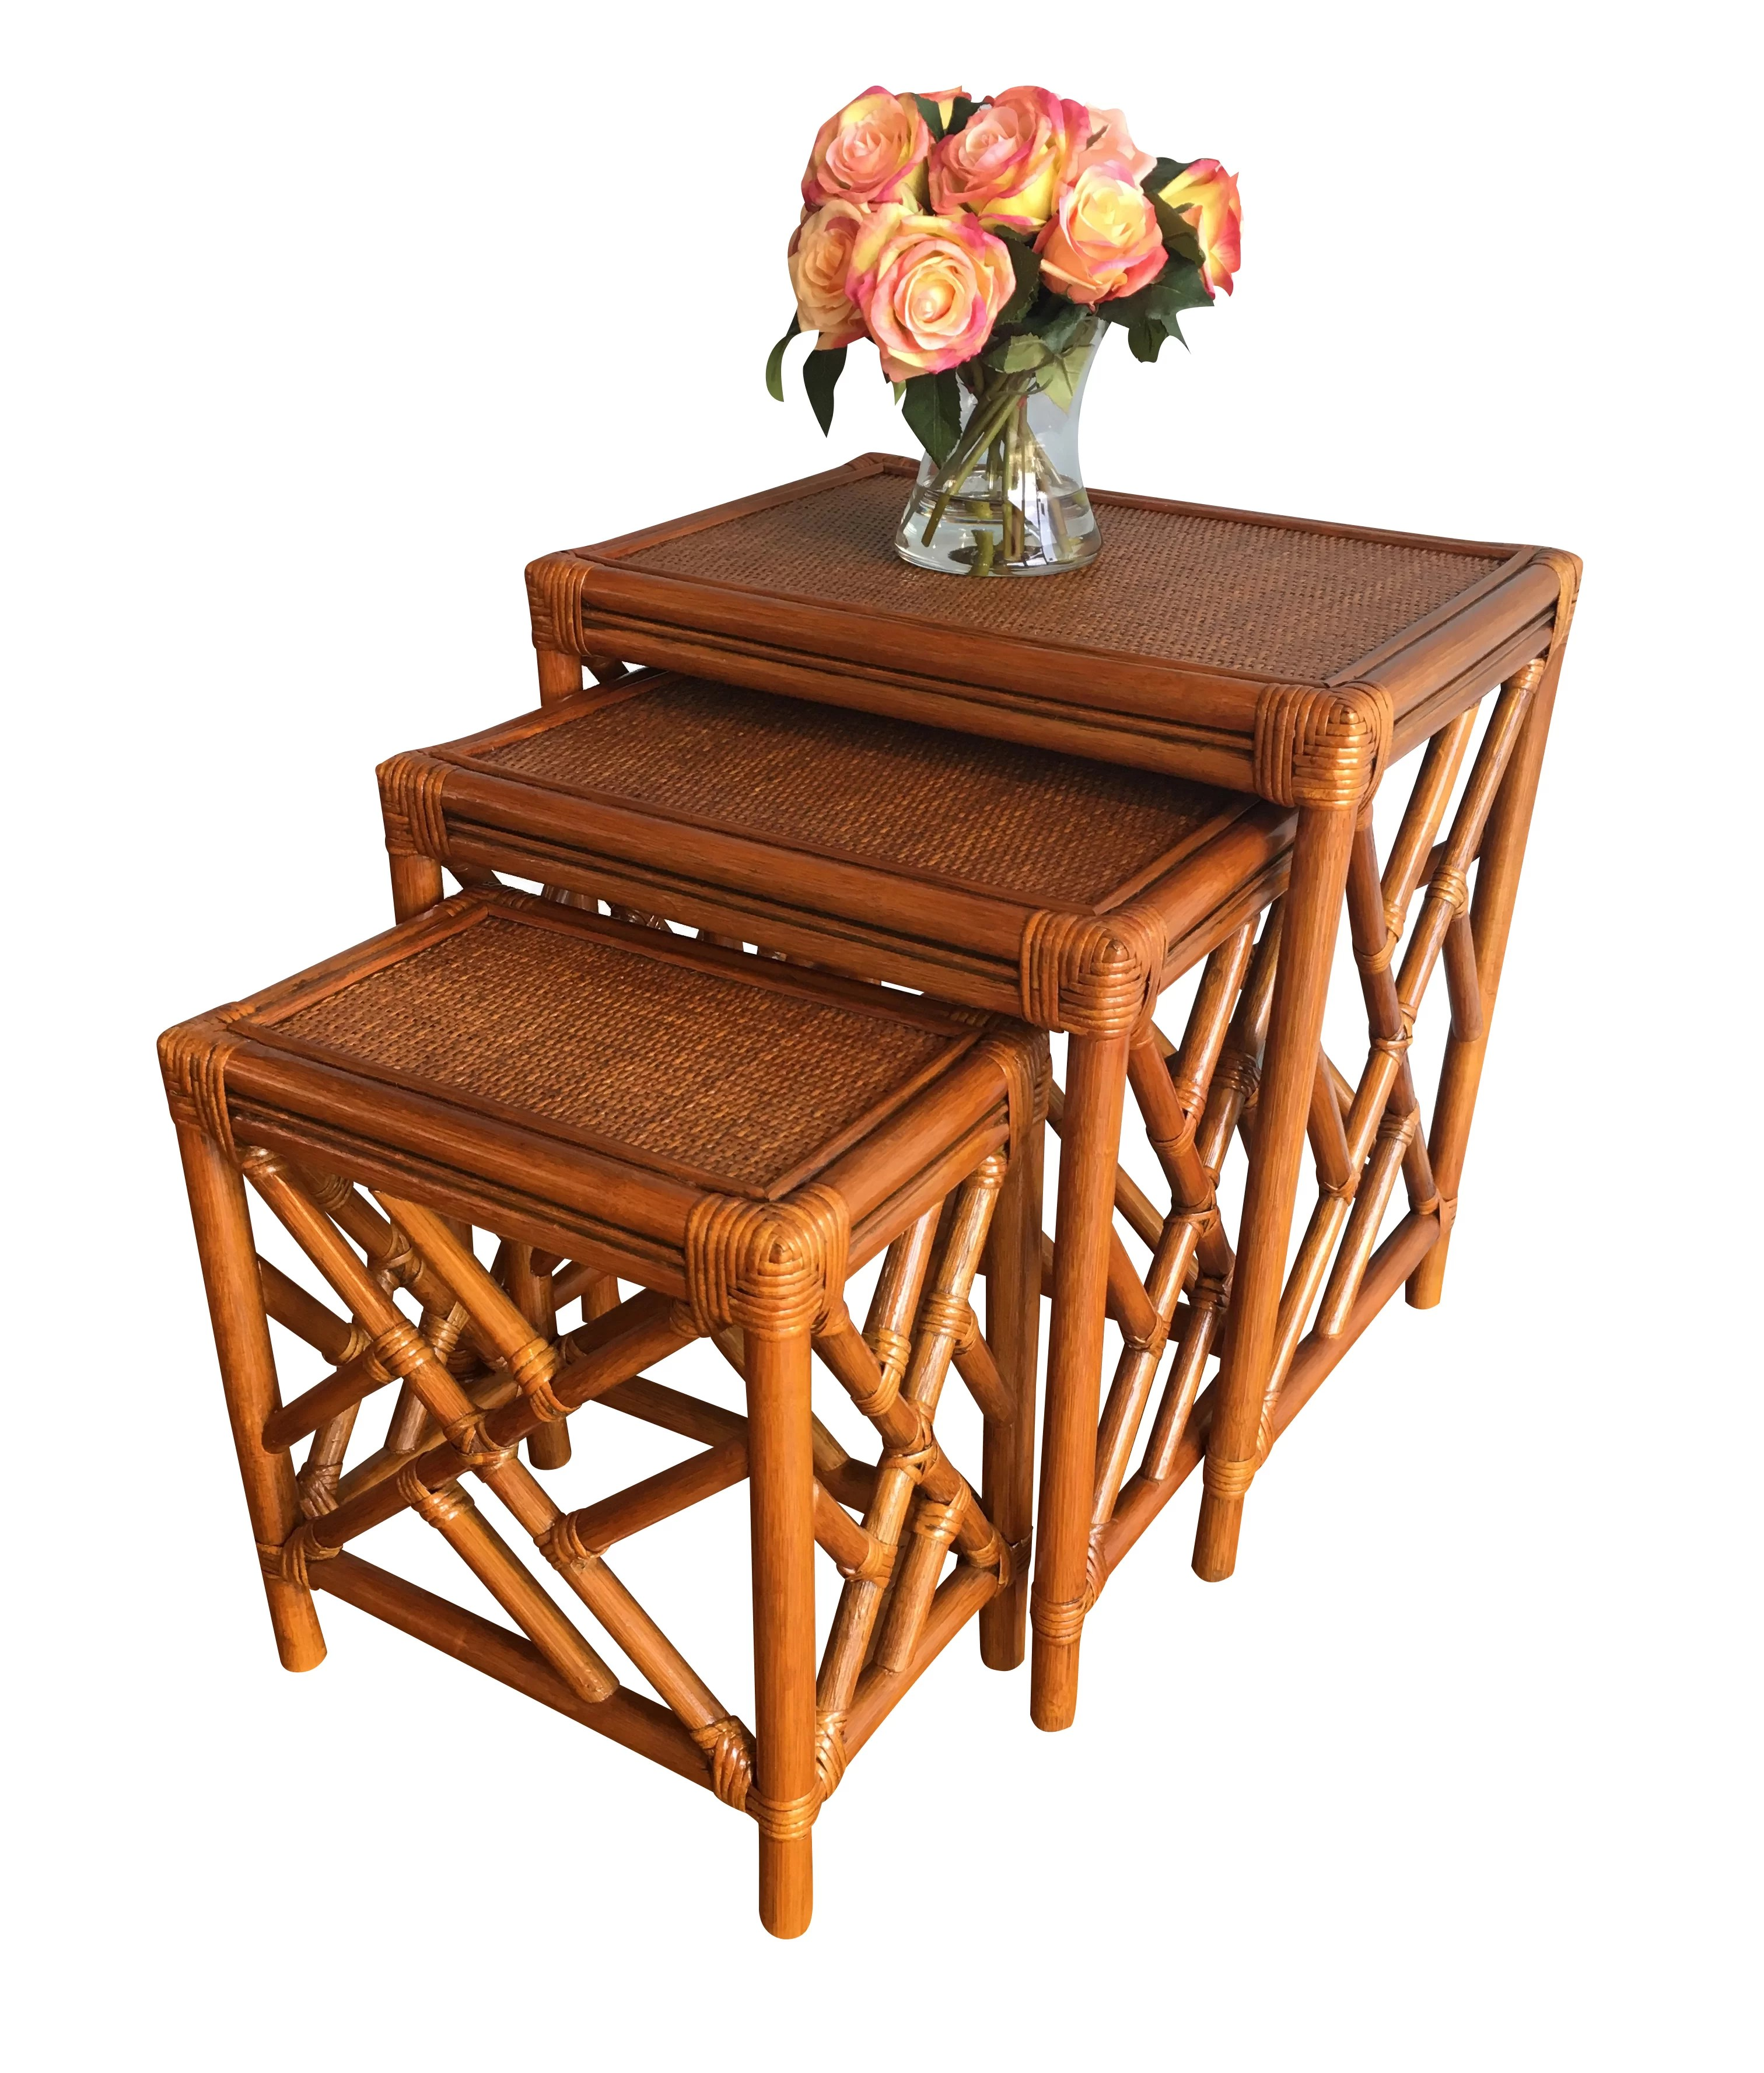 Rattan Table Colusa Rattan 3 Piece Nesting Tables